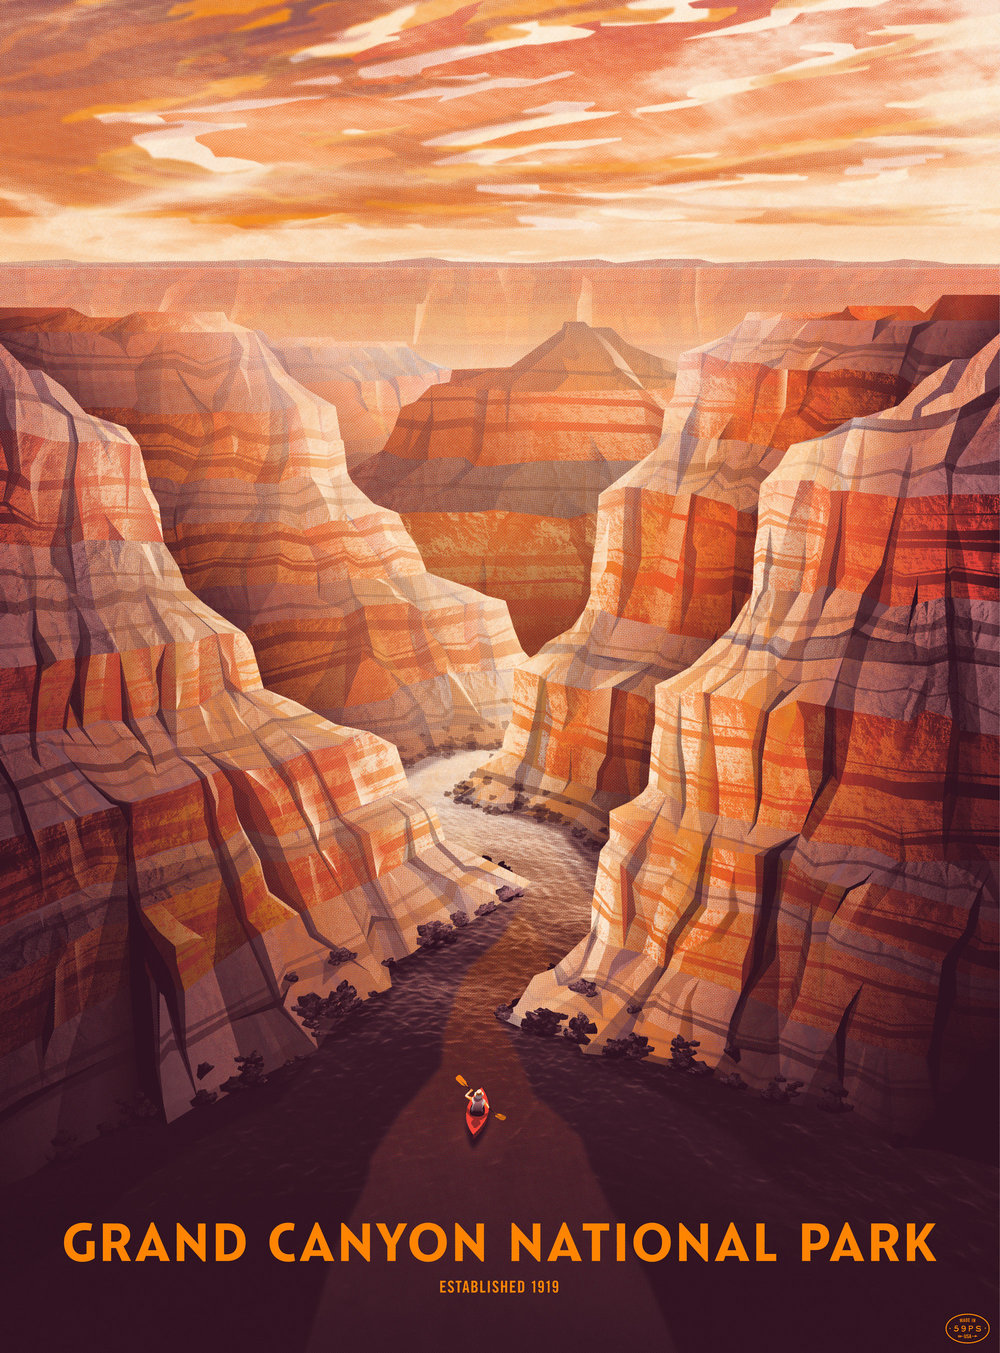 Grand Canyon National Park Poster Dkng